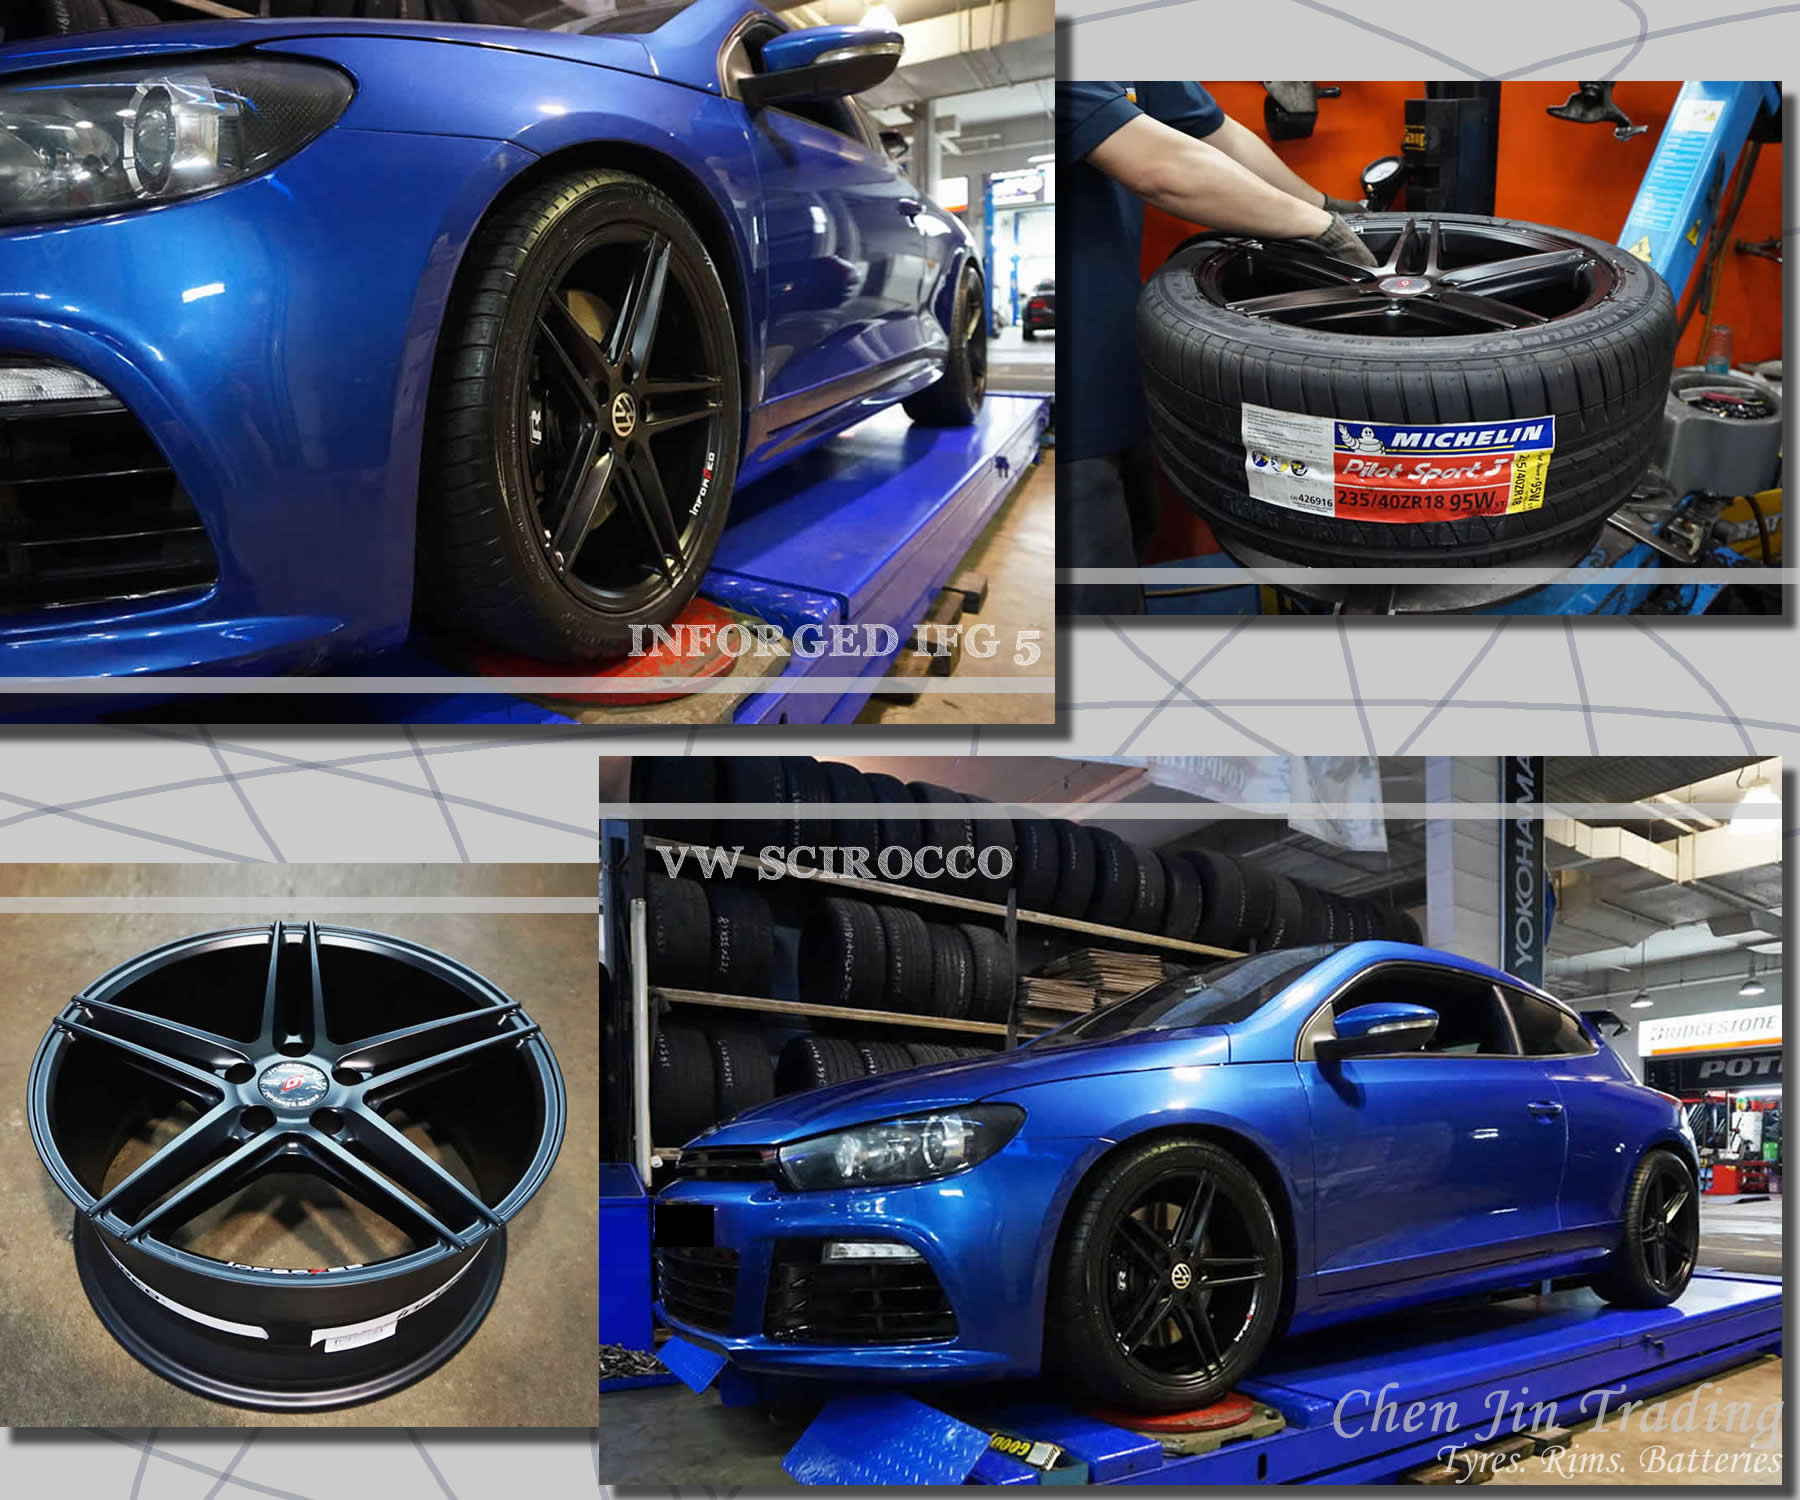 SCIROCCO BLUE INFORGED